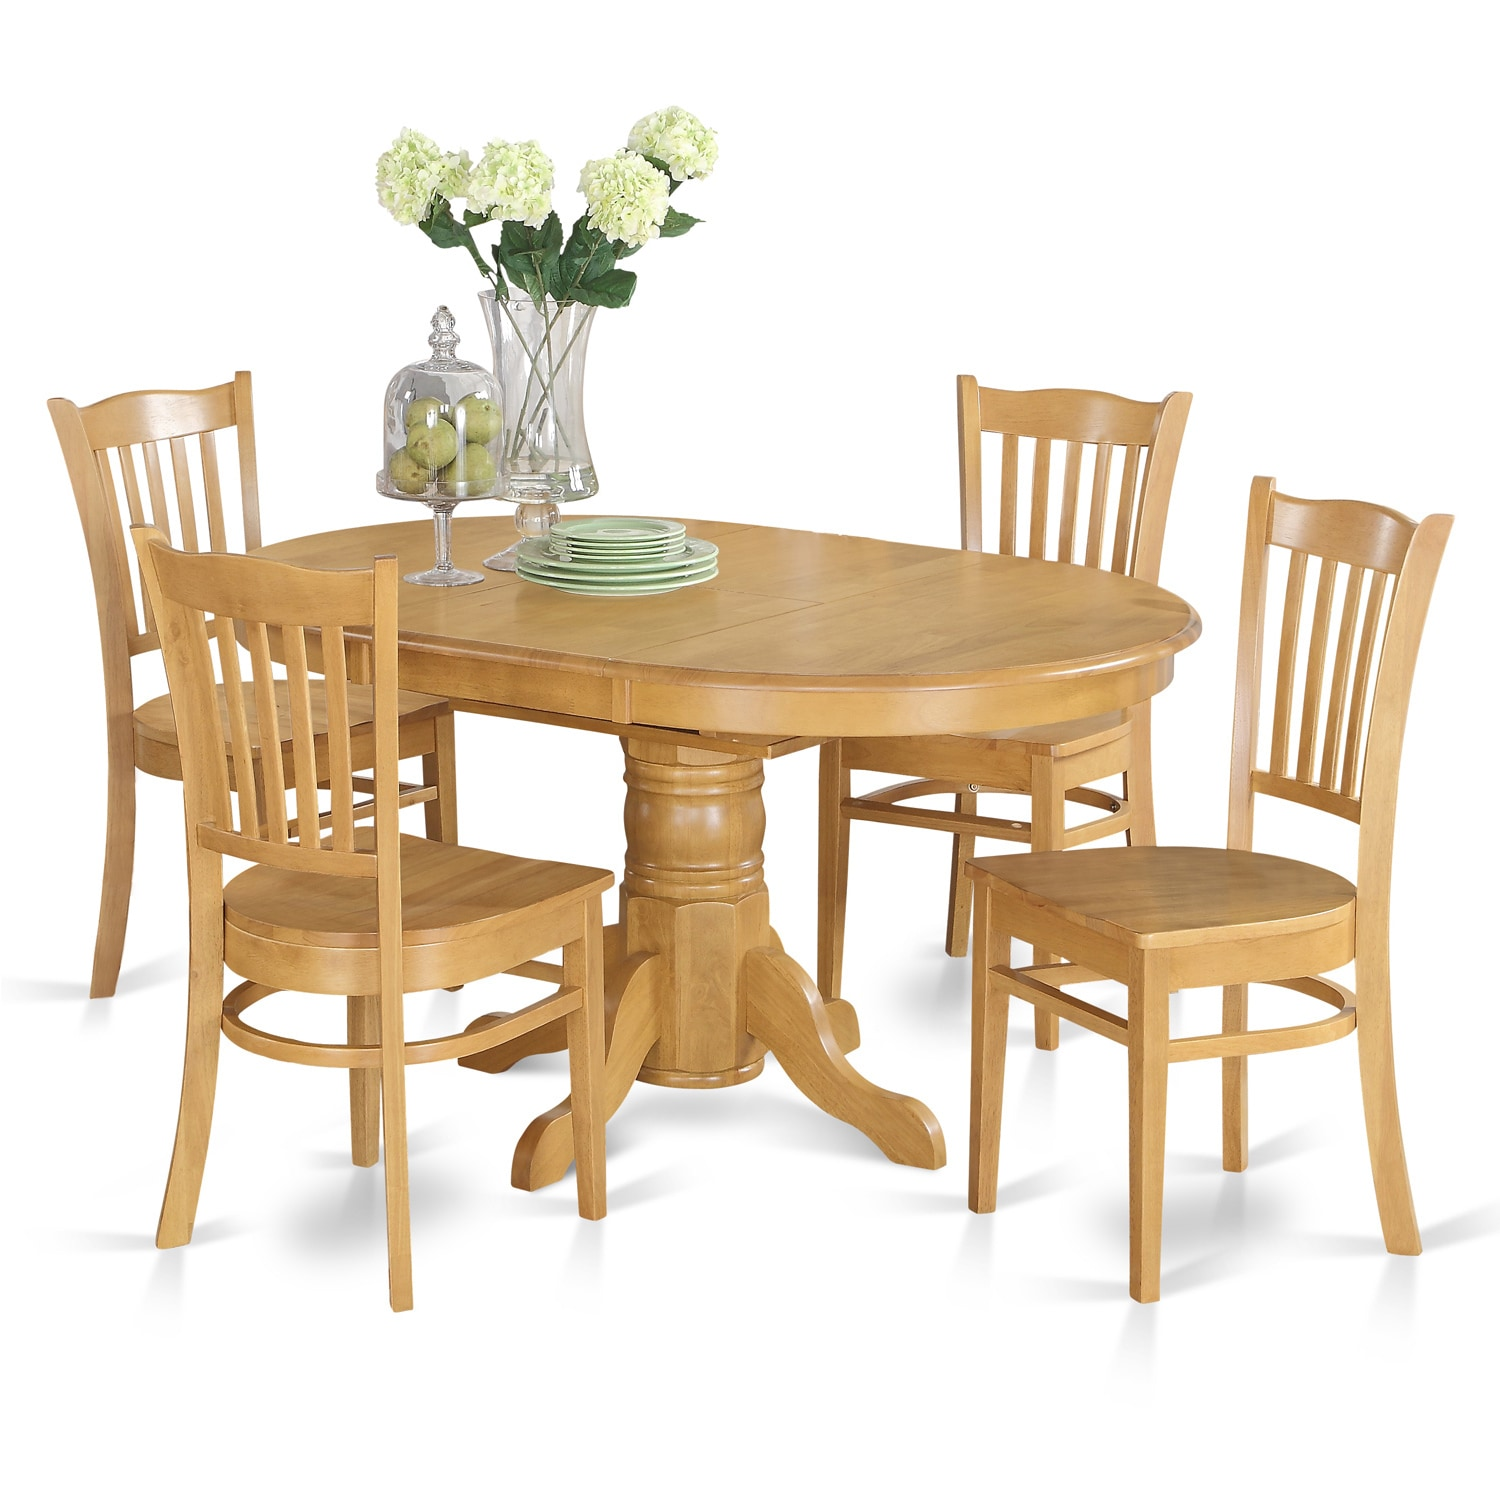 5-piece Dining Table Set For 4- Table with Leaf and 4 Din...